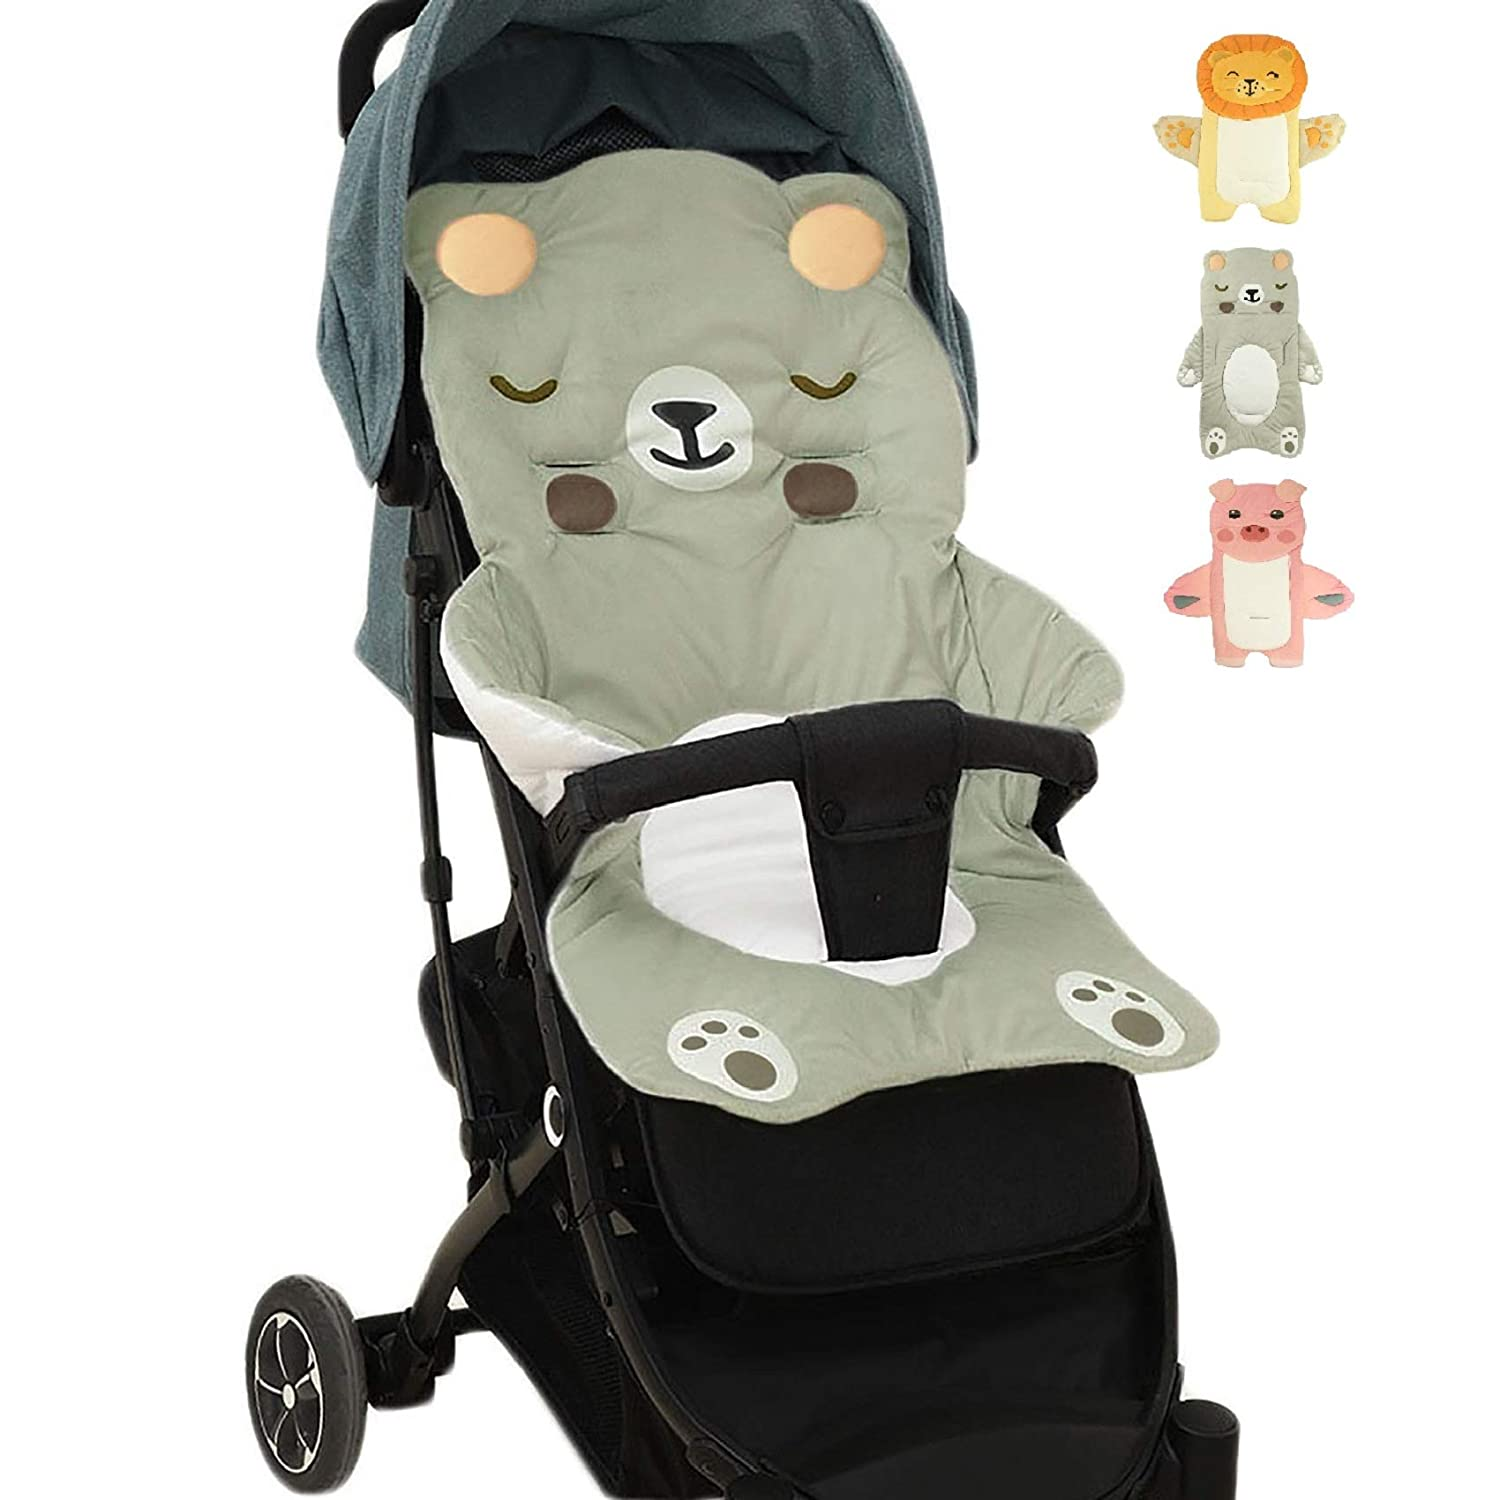 Nifyto Baby Stroller Cushion Pad, Light Infant/Baby Stroller Liner,Cotton Breathable(Bear)